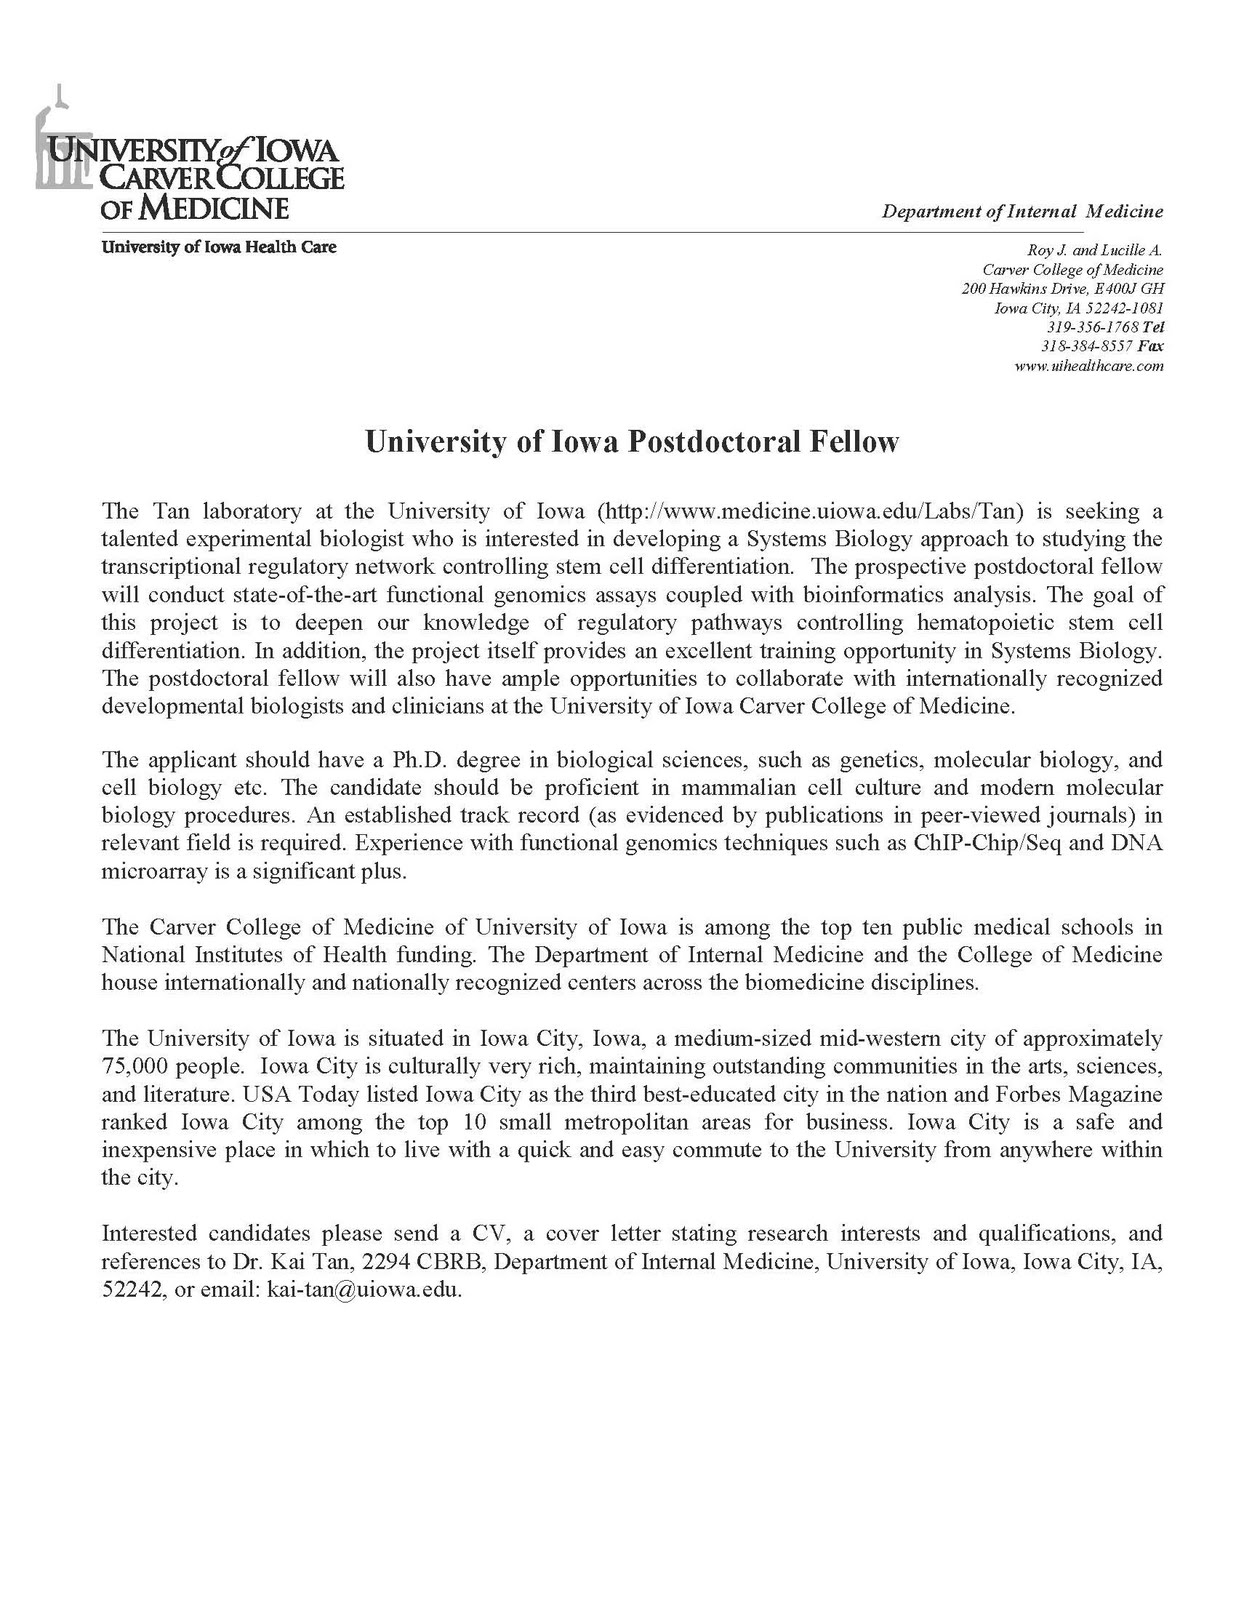 cvs and cover letters for phds and postdocs Materials for postdoctoral position application 2 cover letter dr long chen, department of engineering physics, École polytechnique, po box 6079, station centre-ville.